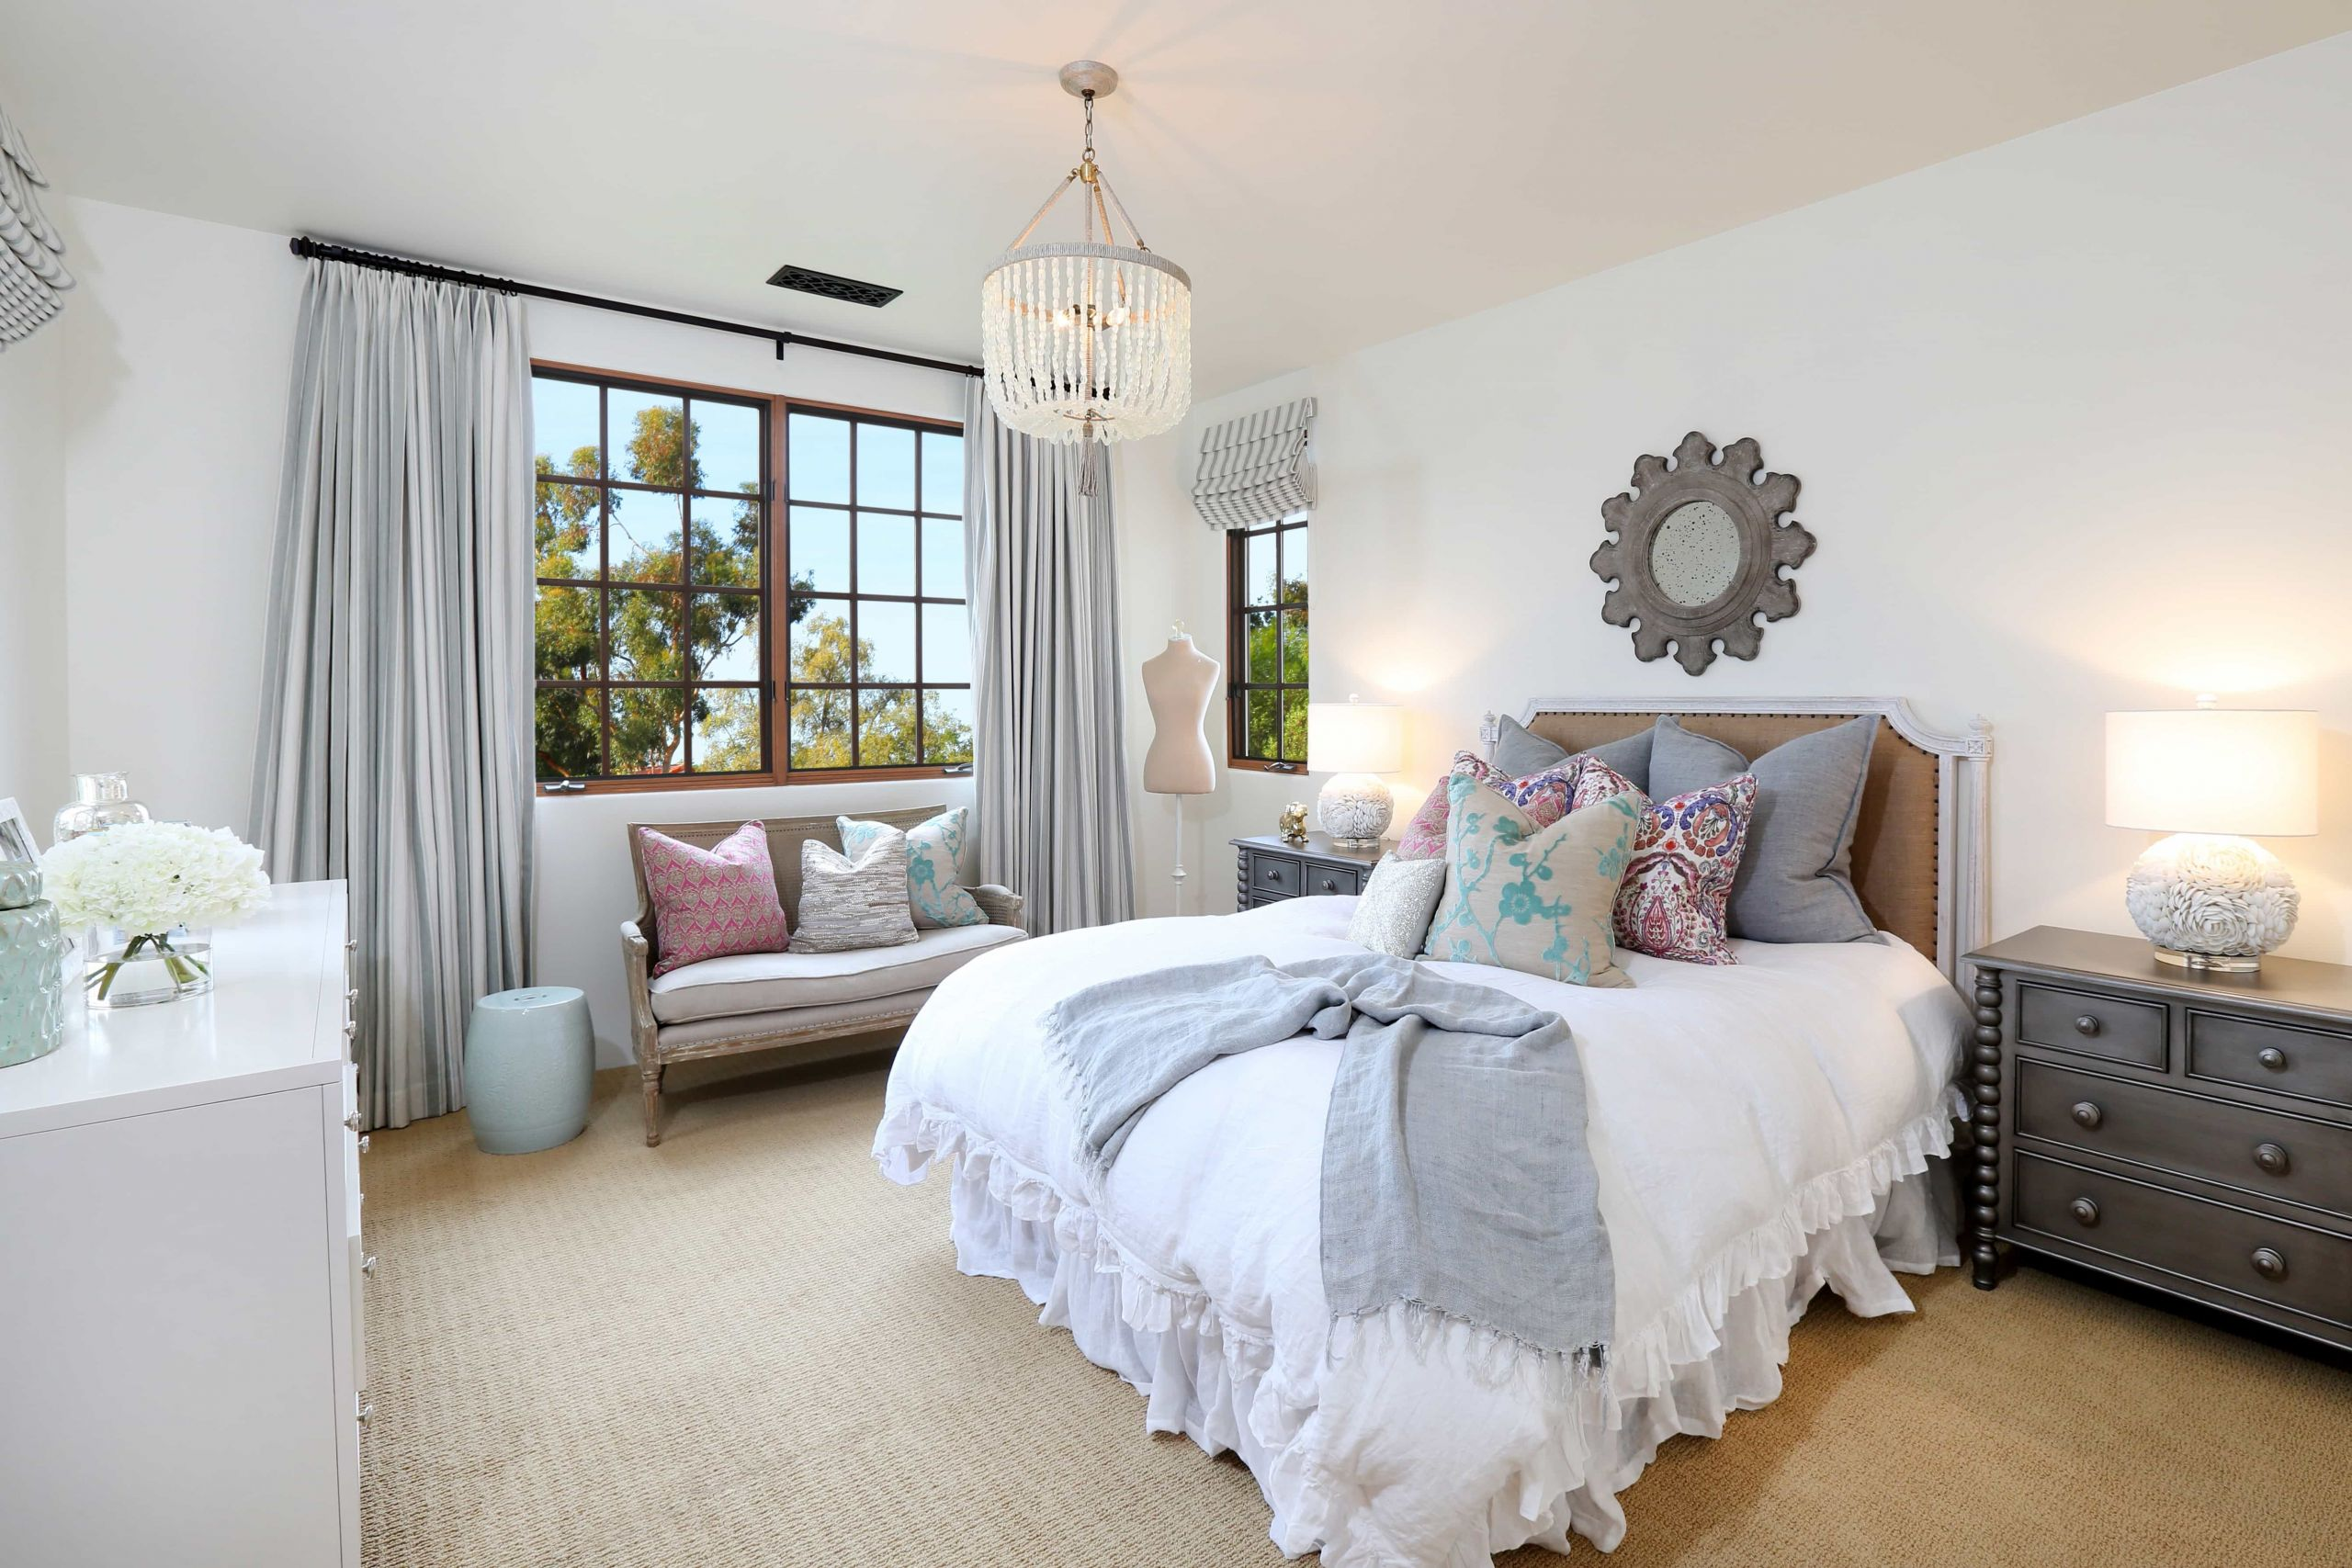 Modern Shabby Chic Bedrooms Best Of How to Decorate A Shabby Chic Bedroom